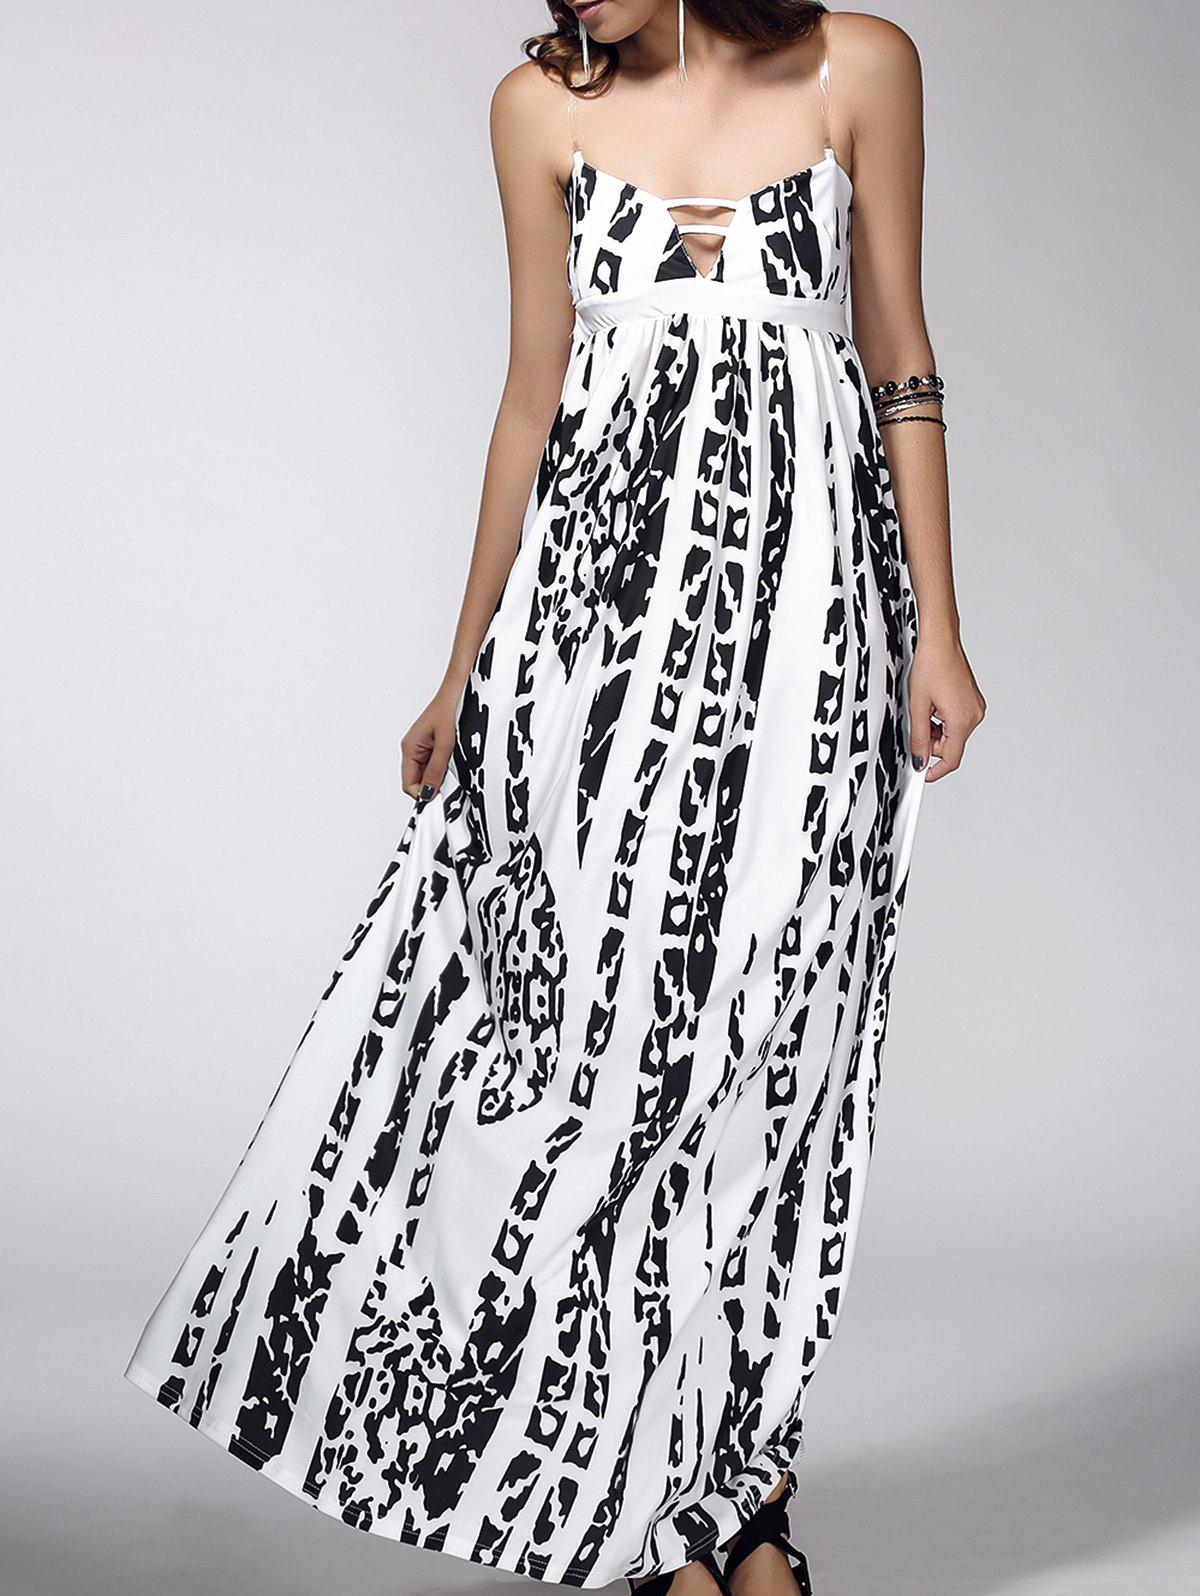 Elegant Women's Strappy Abstract Print Dress